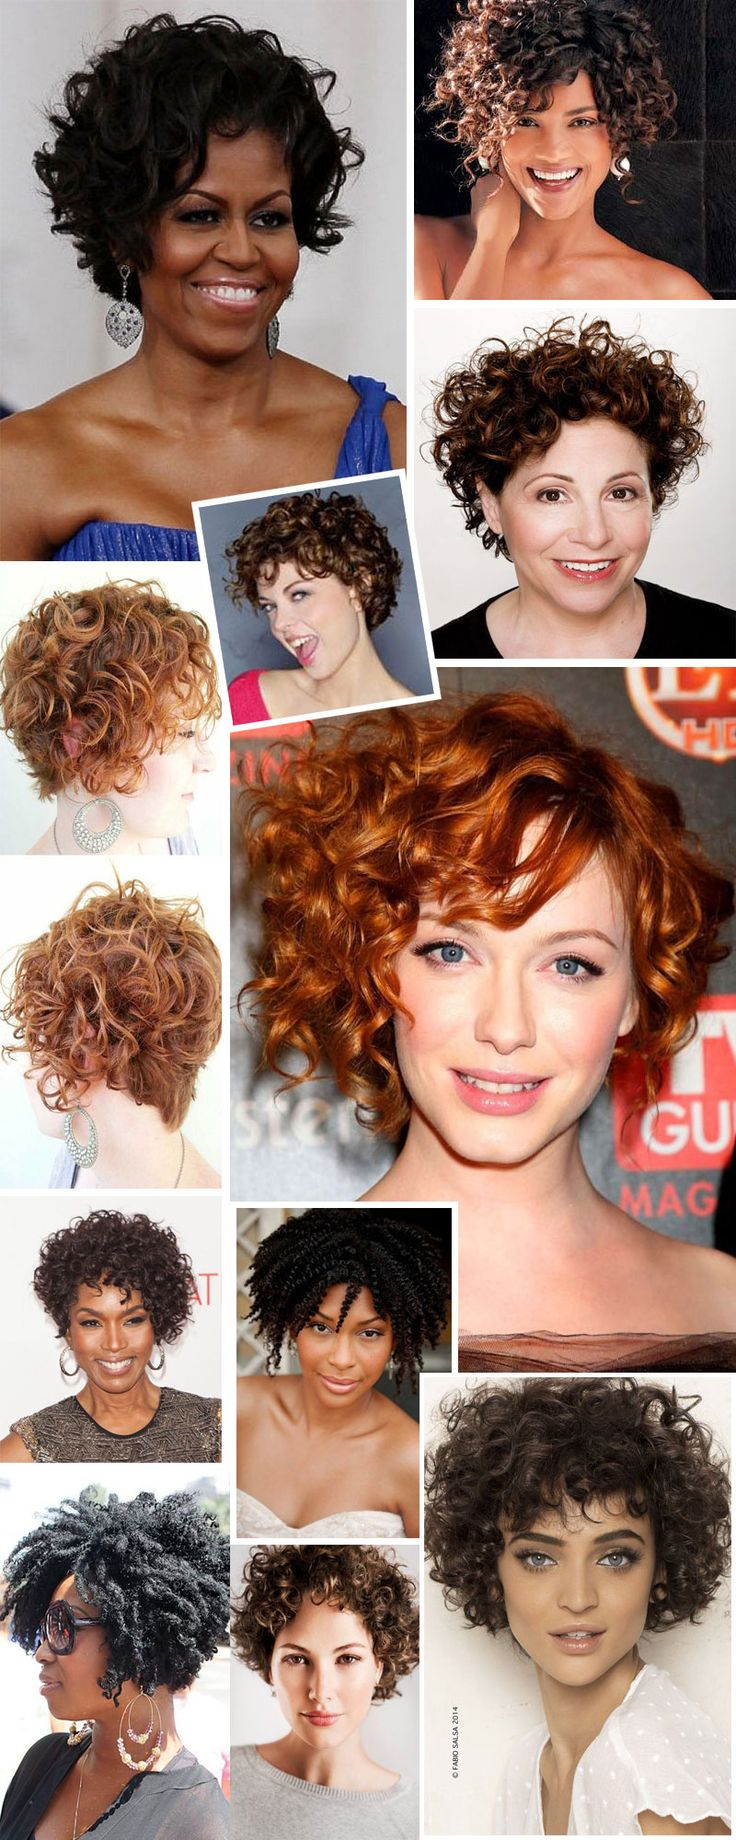 best images about cabelo curto on pinterest coupe outfit and curls